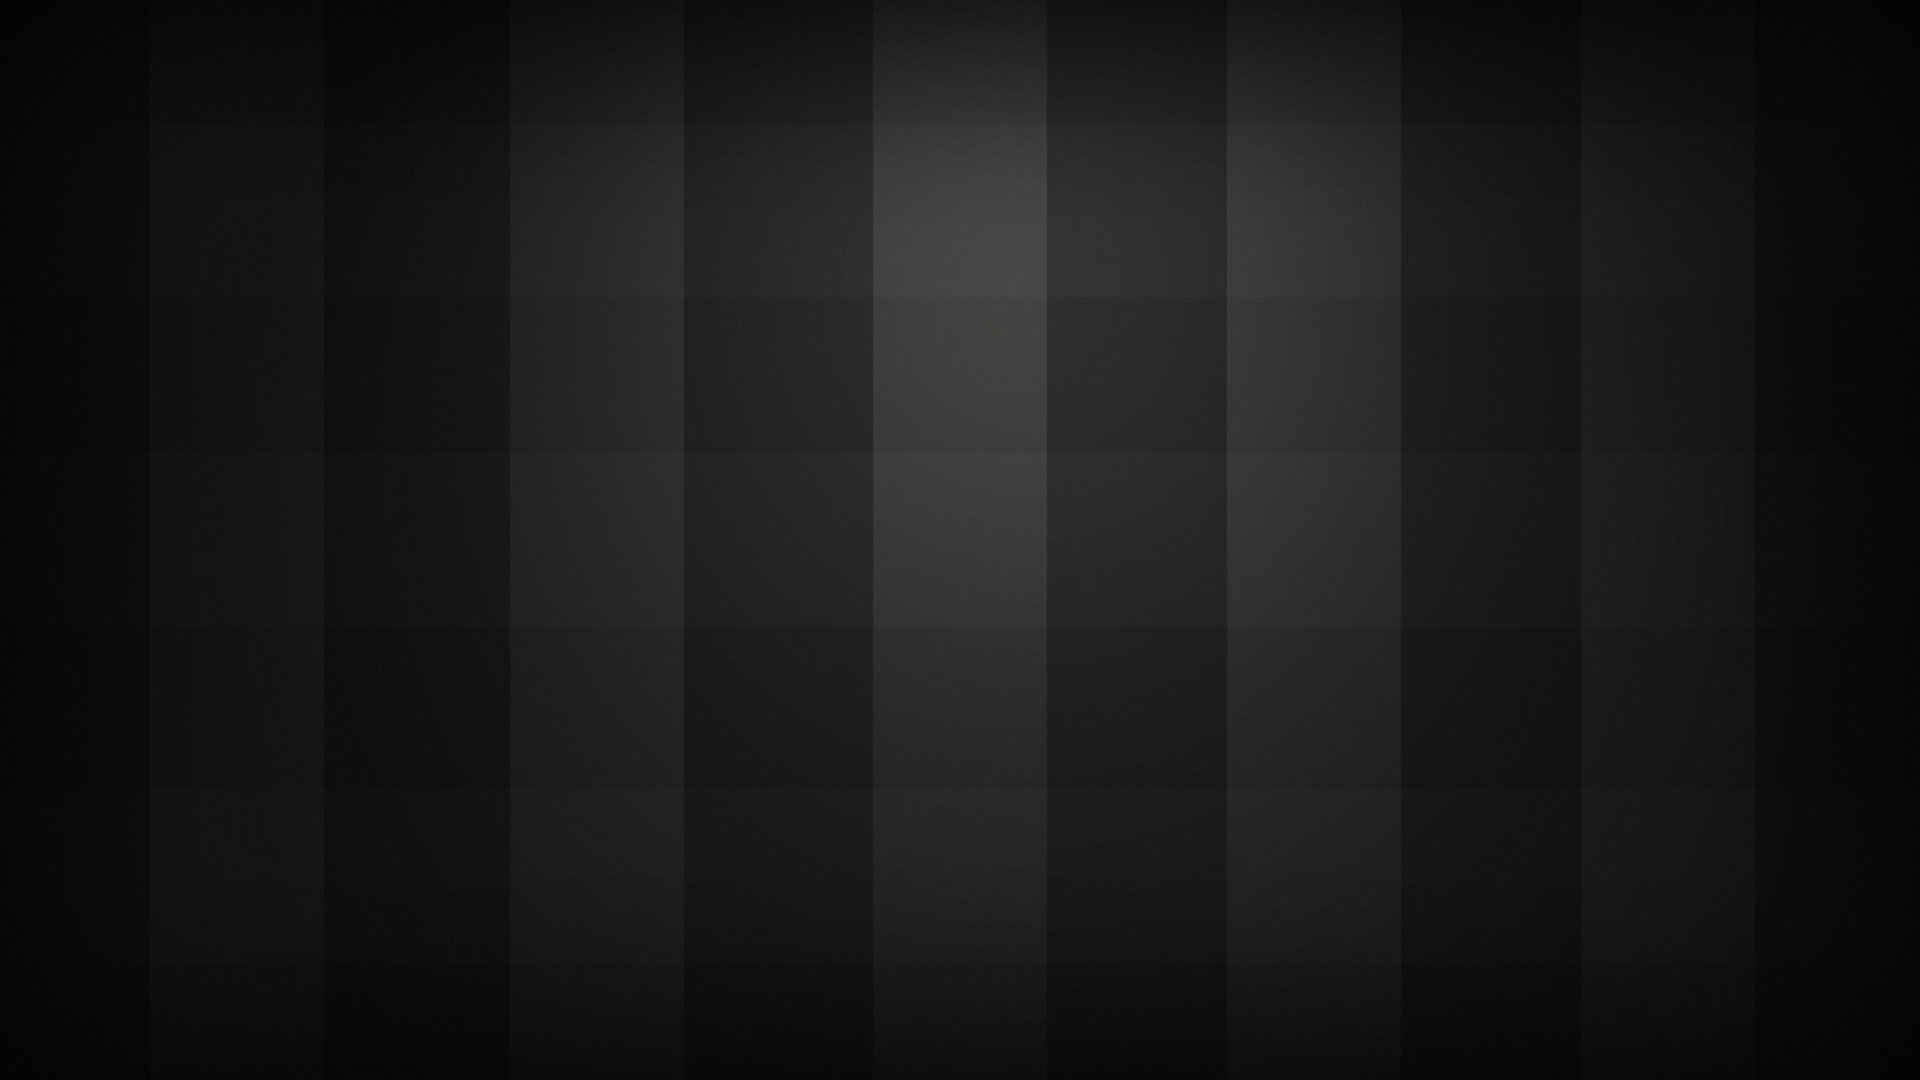 Download pure black and 3d black hd wallpapers Plain white wallpaper for walls